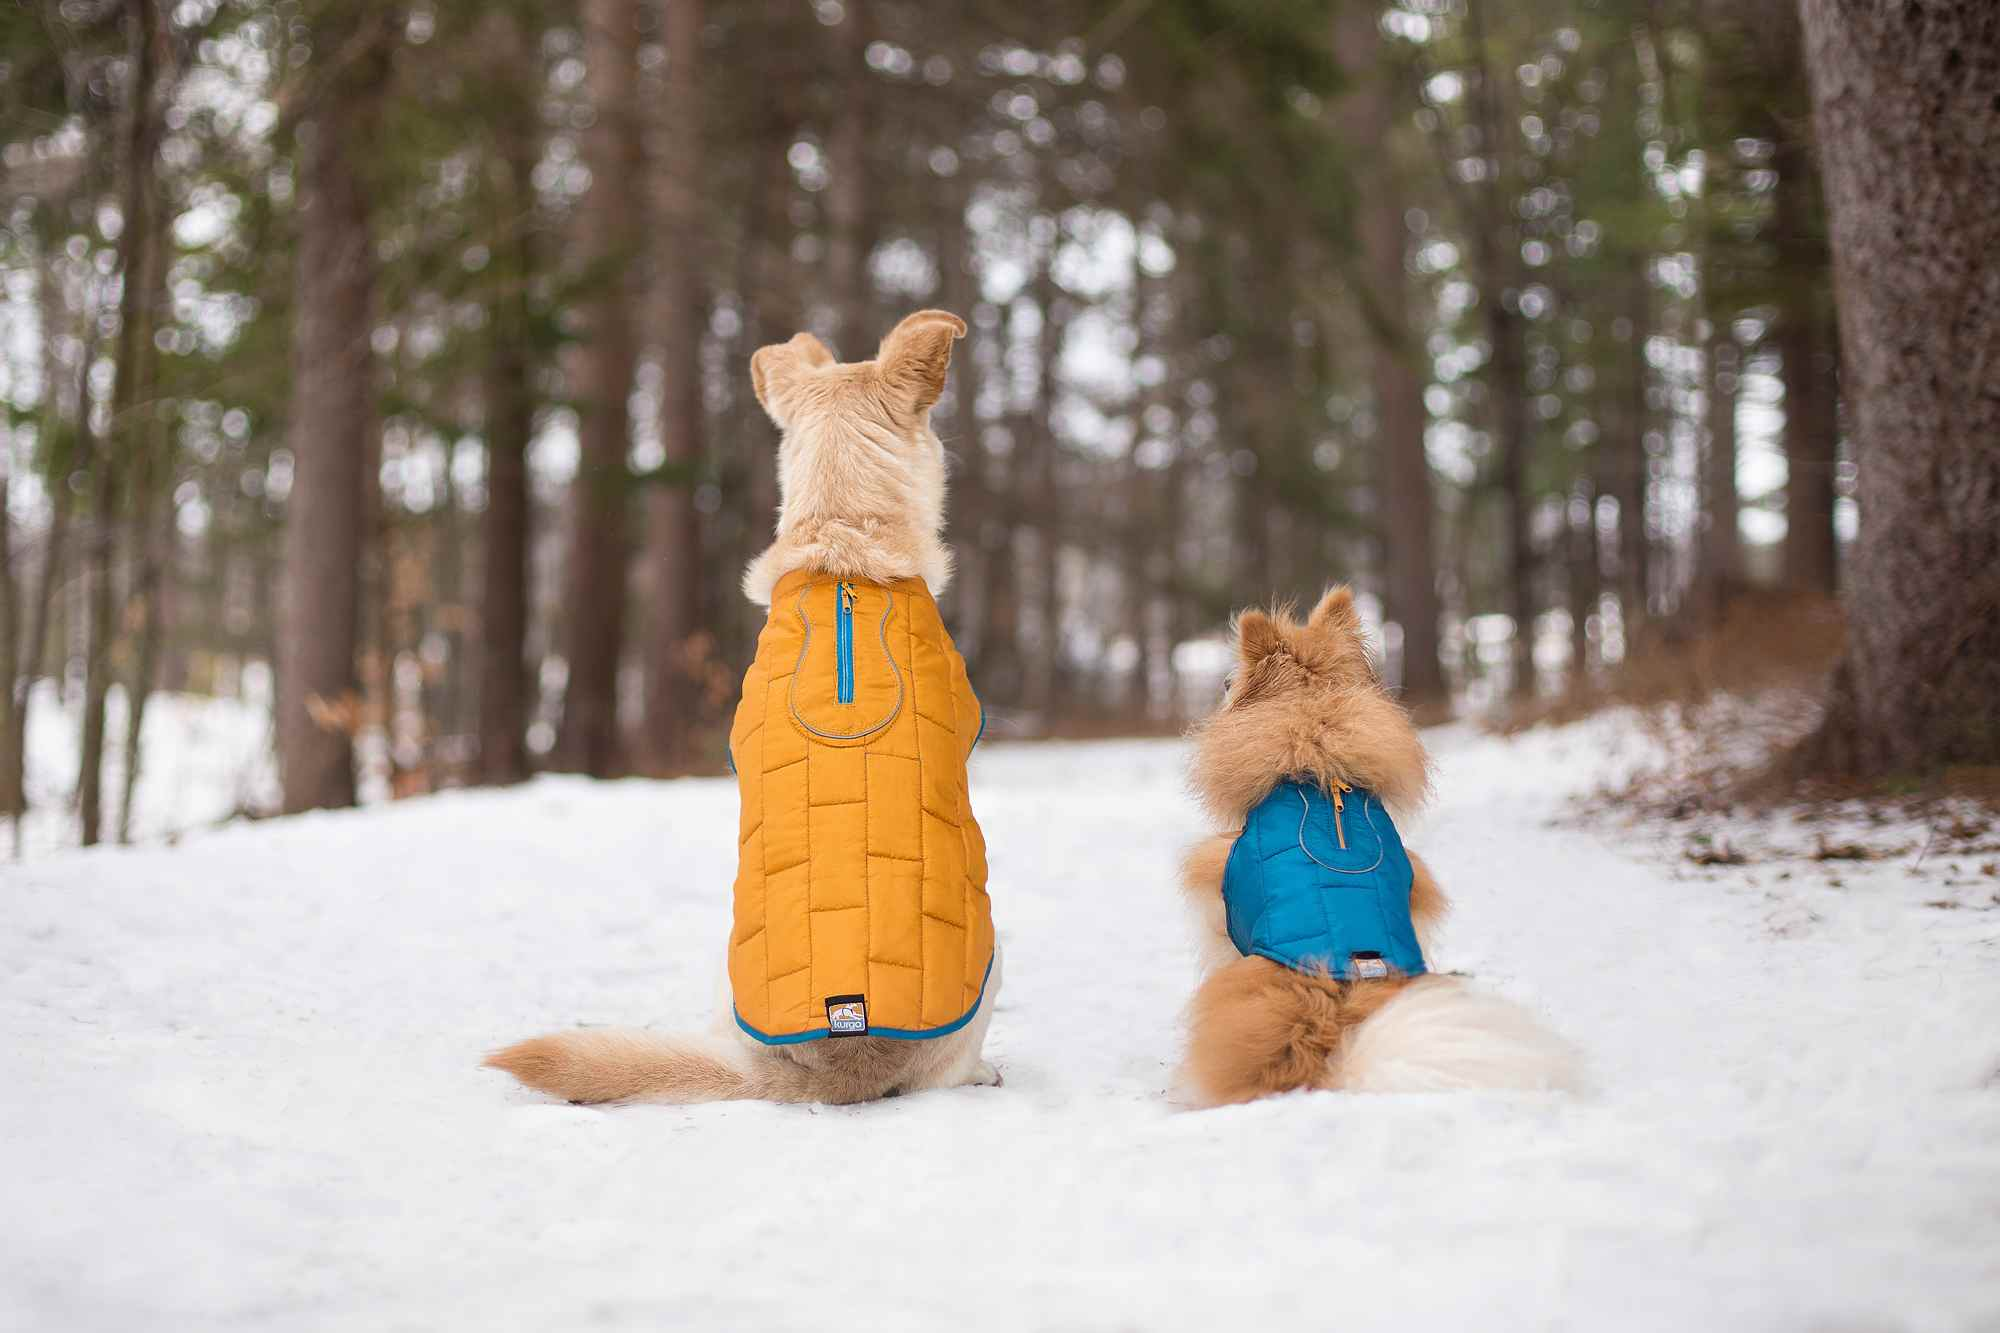 Dog winter coat - Kurgo Loft Dog Jackets are perfect for winter weather